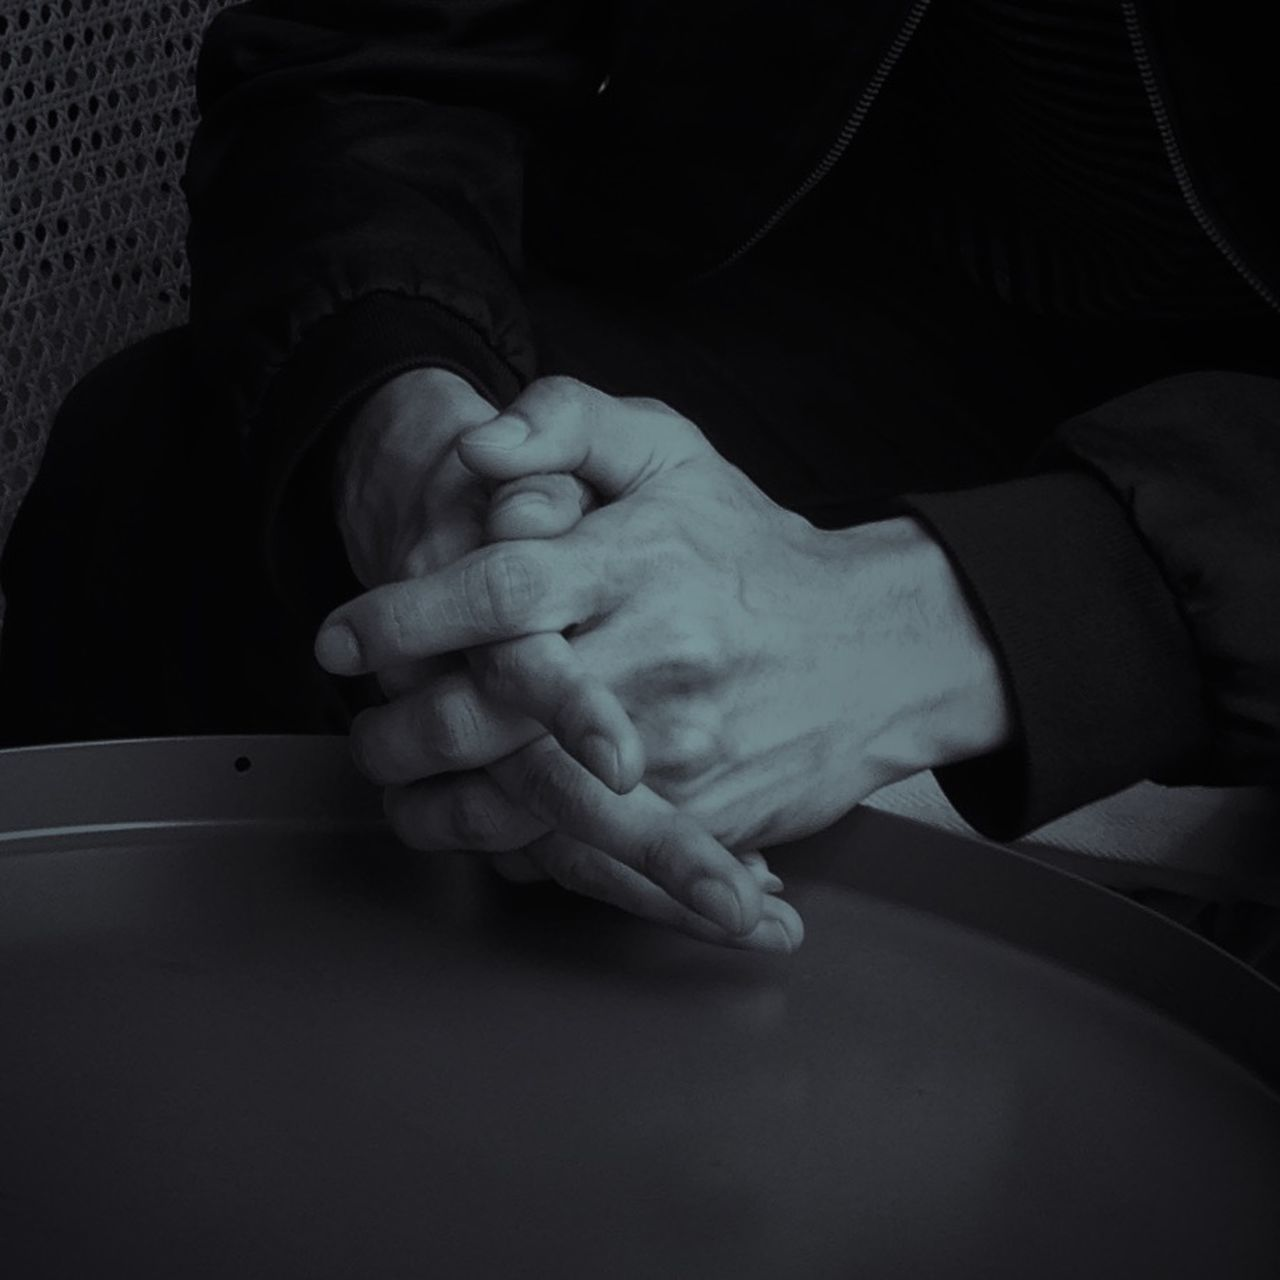 CLOSE-UP OF HANDS HOLDING TABLE